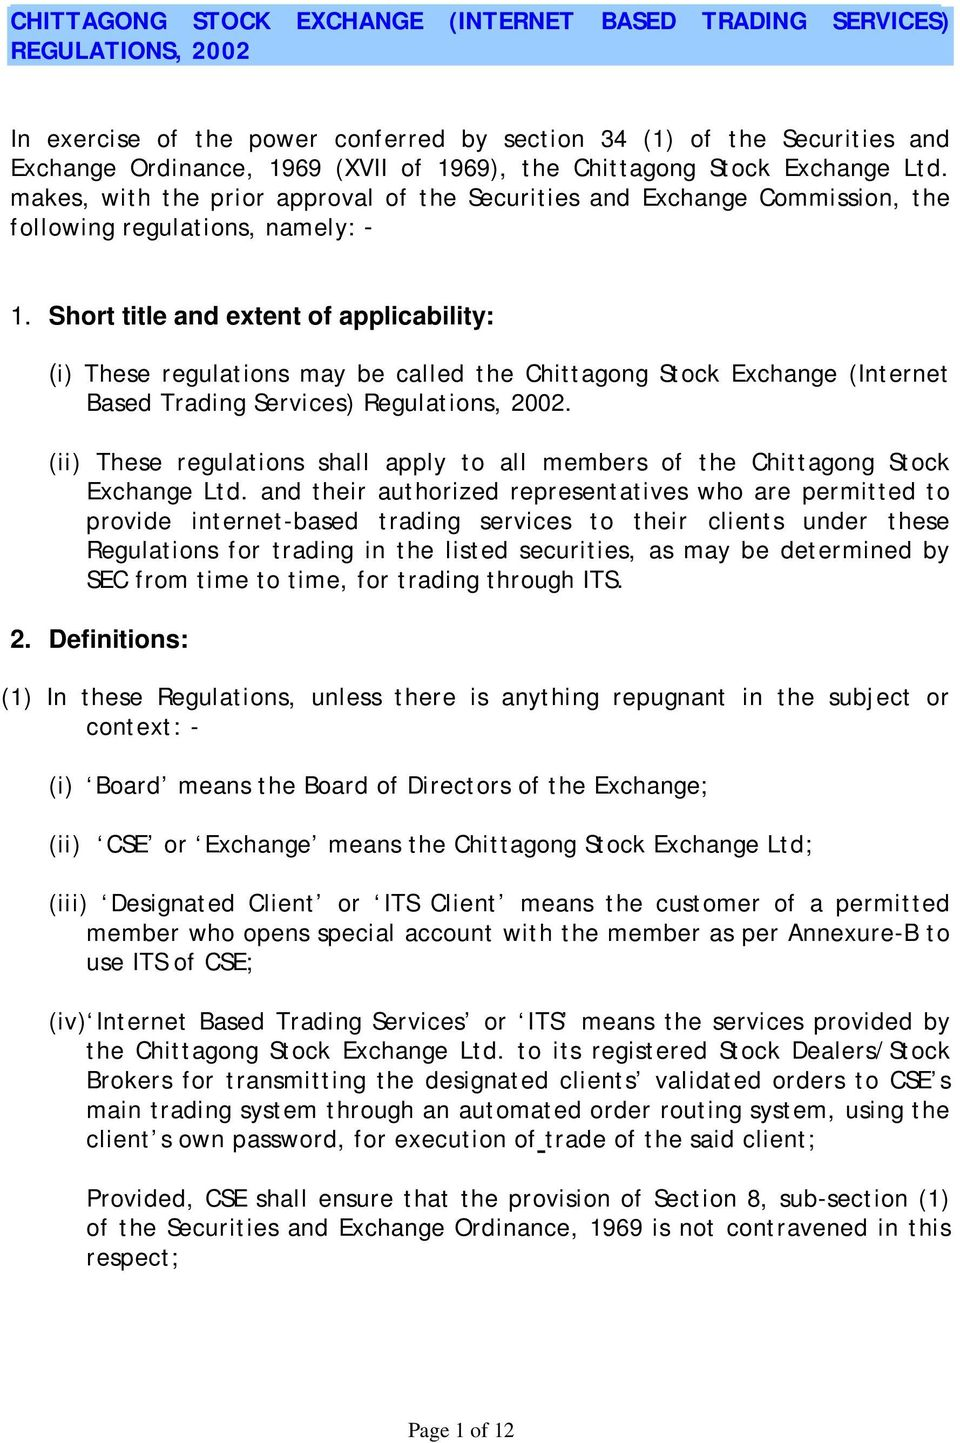 Short title and extent of applicability: (i) These regulations may be called the Chittagong Stock Exchange (Internet Based Trading Services) Regulations, 2002.